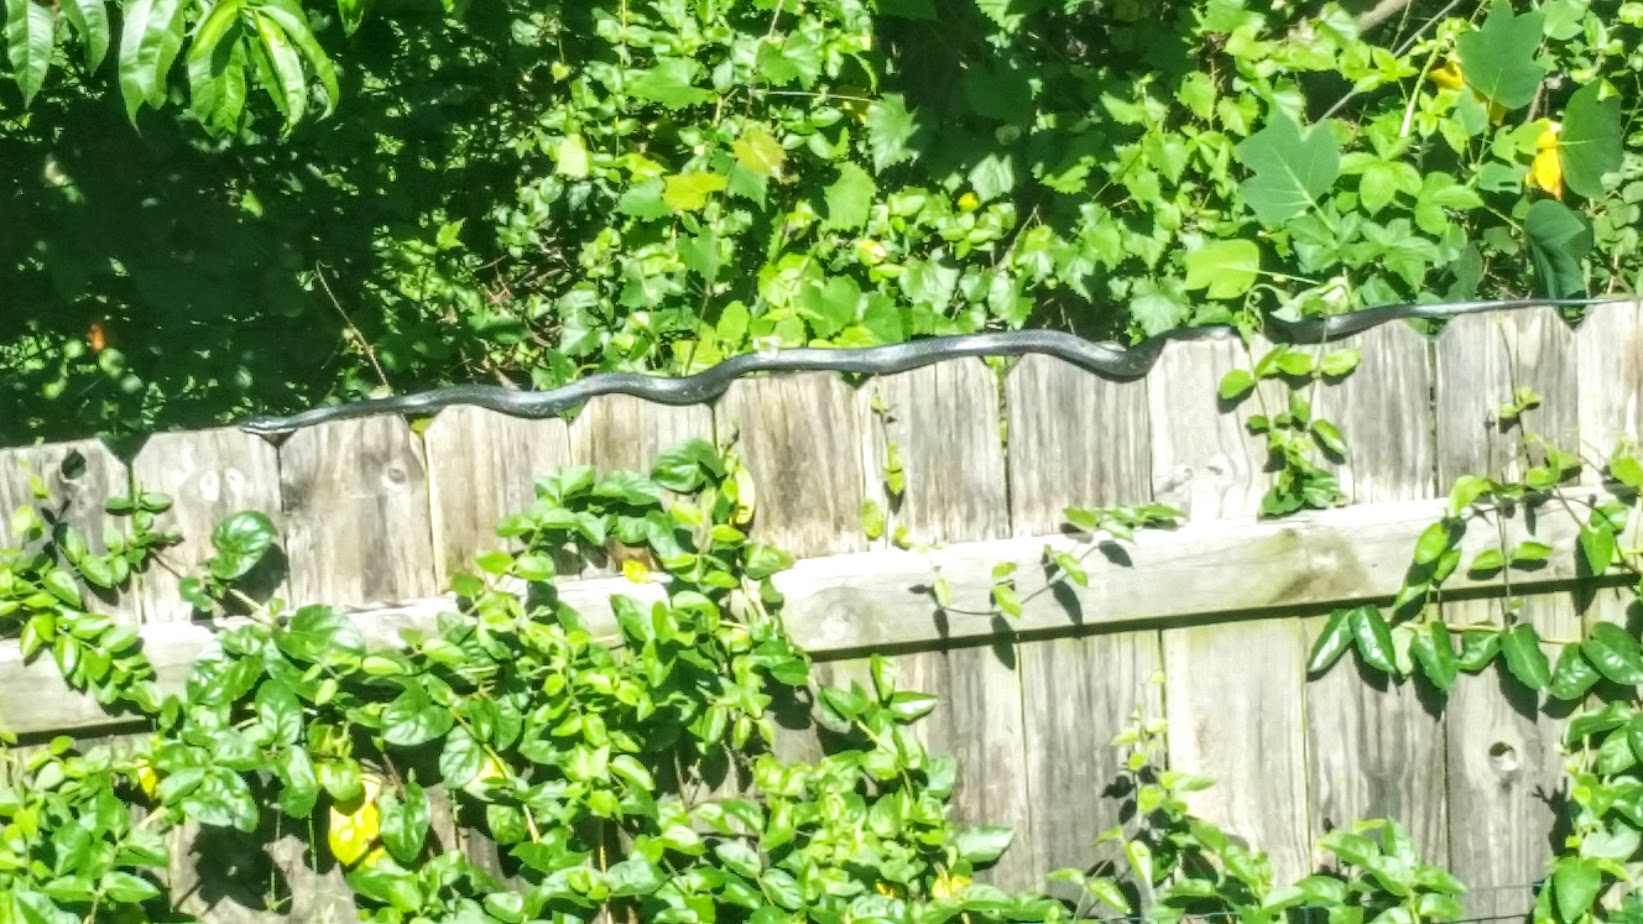 """And yes, that's a very long (54"""" by our estimate), allegedly harmless (I didn't stay around to find out) black snake moving along the fence. It was fascinating to watch (from a safe distance) it go from the grass up to and across the fence."""